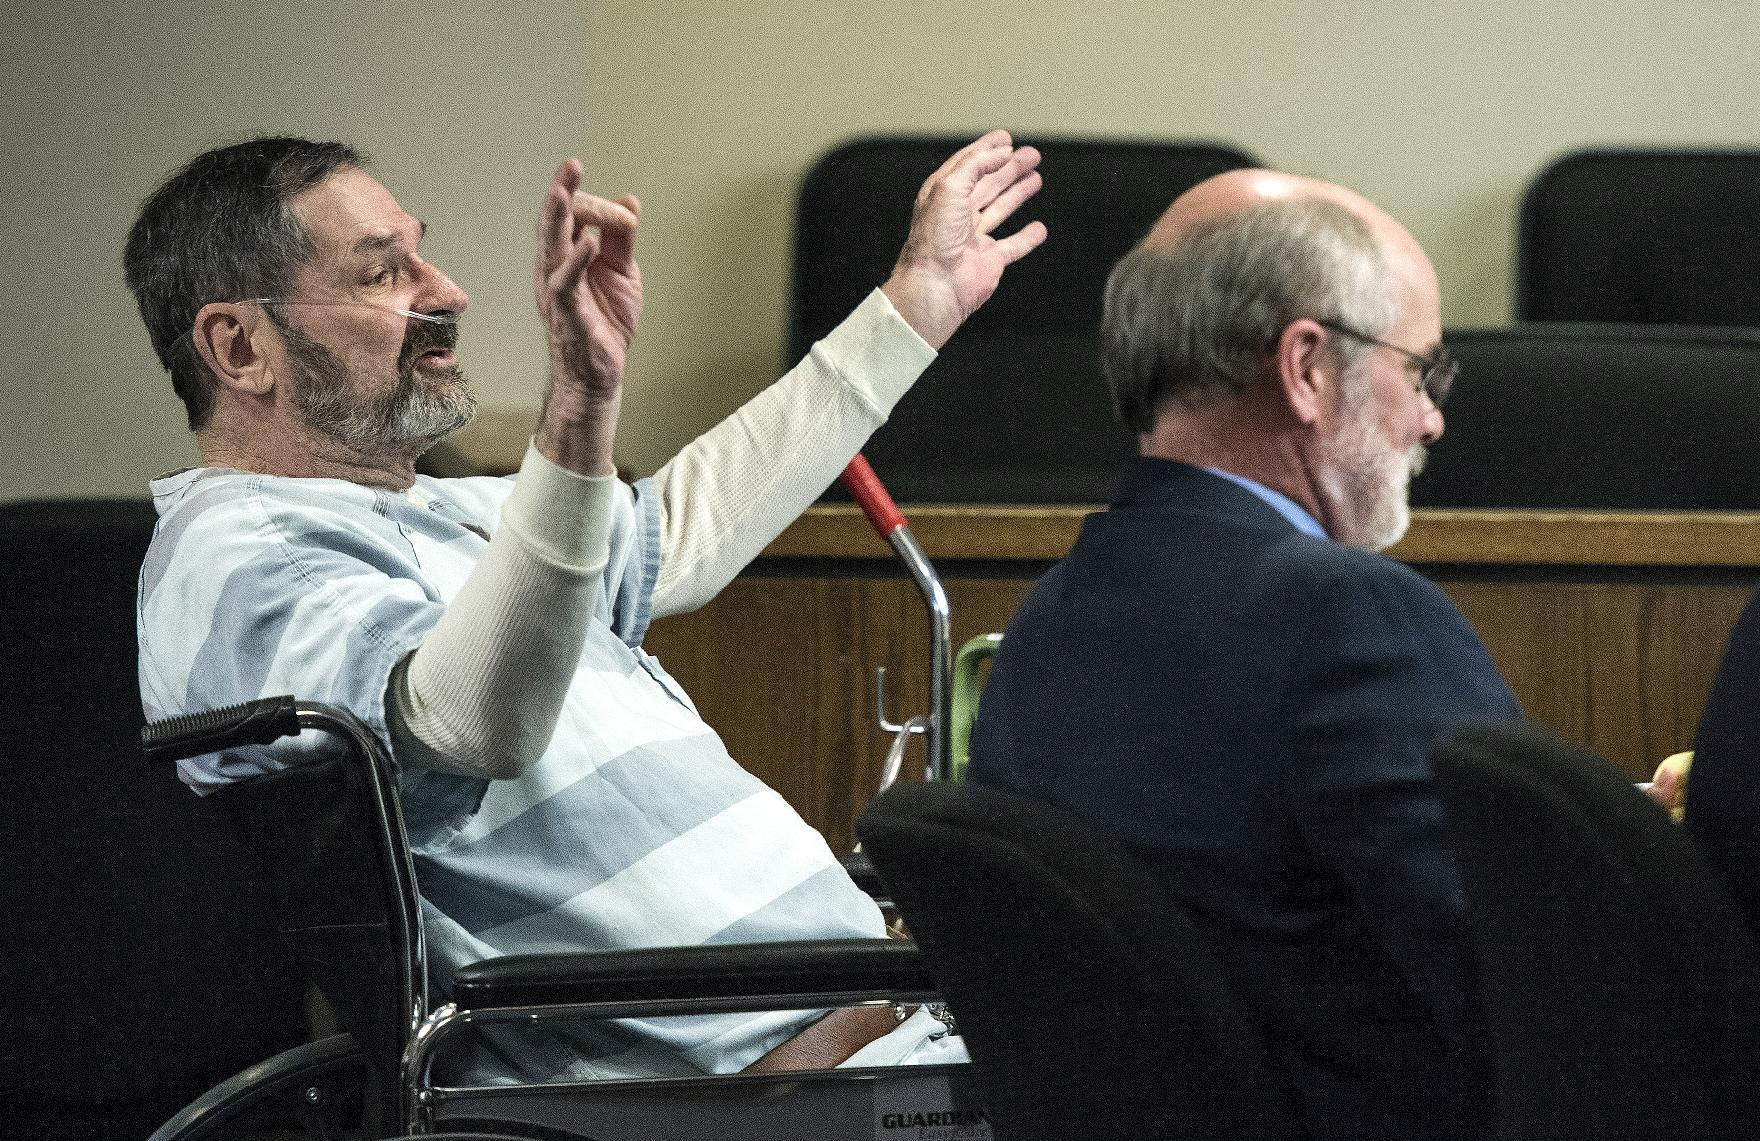 Miller says he will plead guilty in Jewish site shootings